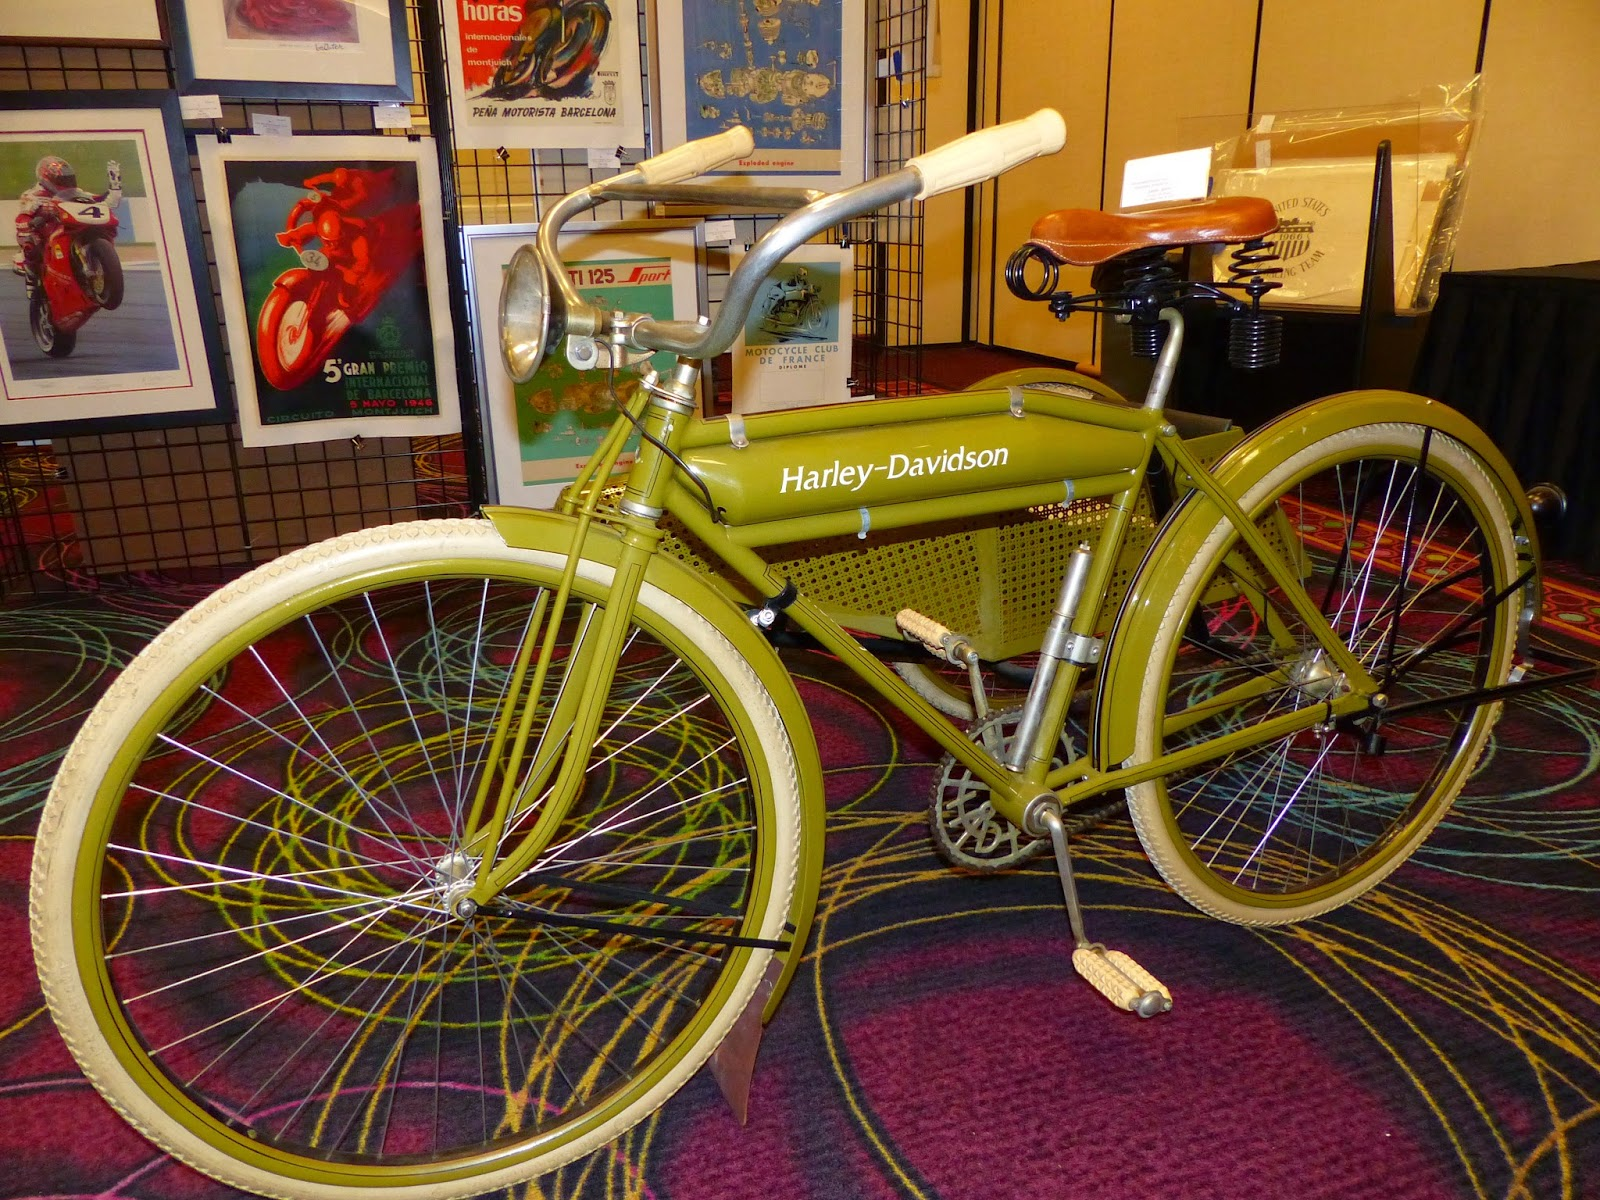 oldmotodude: 1917 harley-davidson bicycle with sidecar for sale at